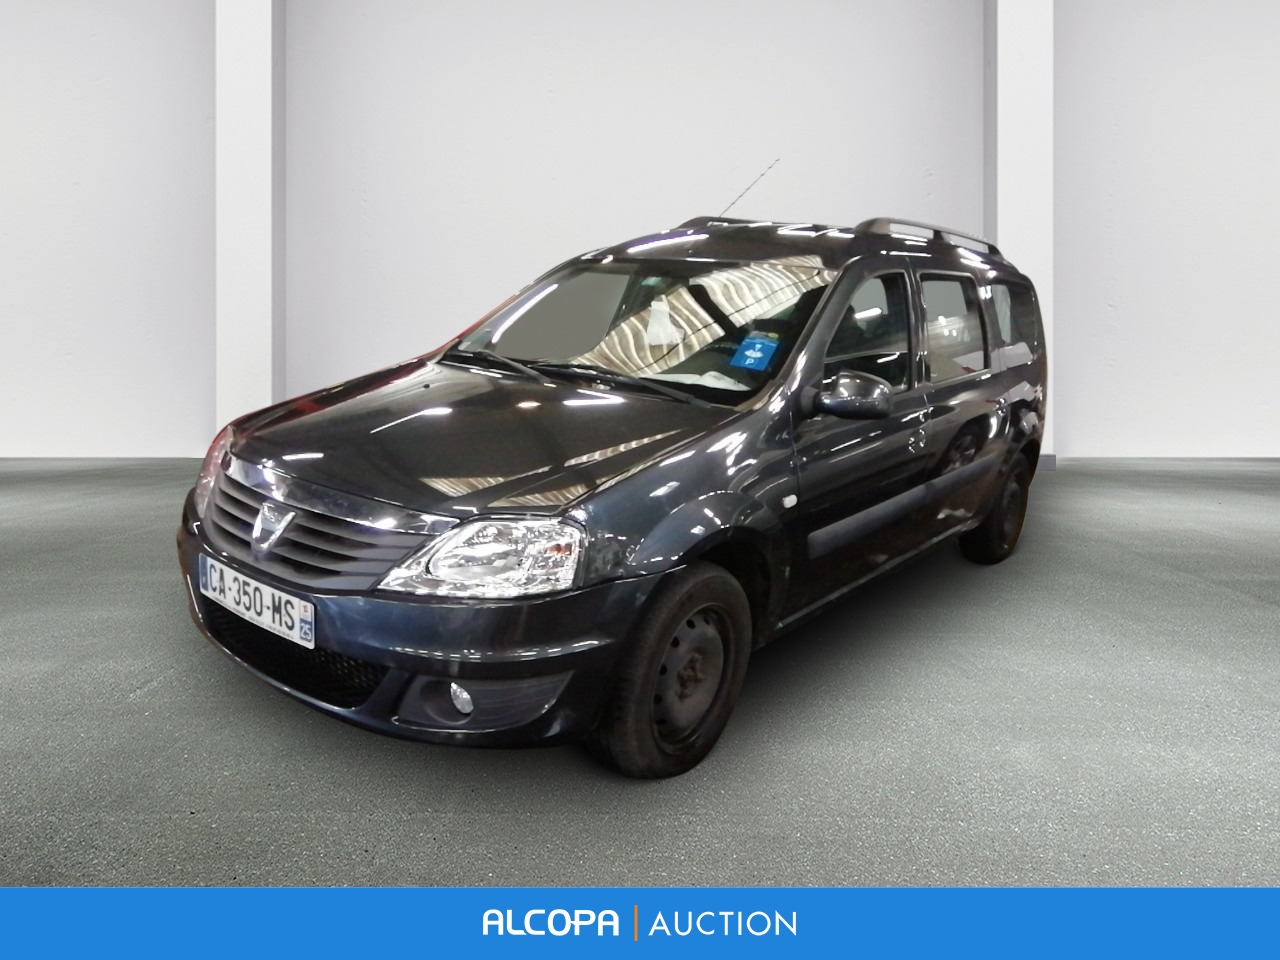 dacia logan mcv logan mcv dci 90 eco2 7 places black line 2 euro 5 nancy alcopa auction